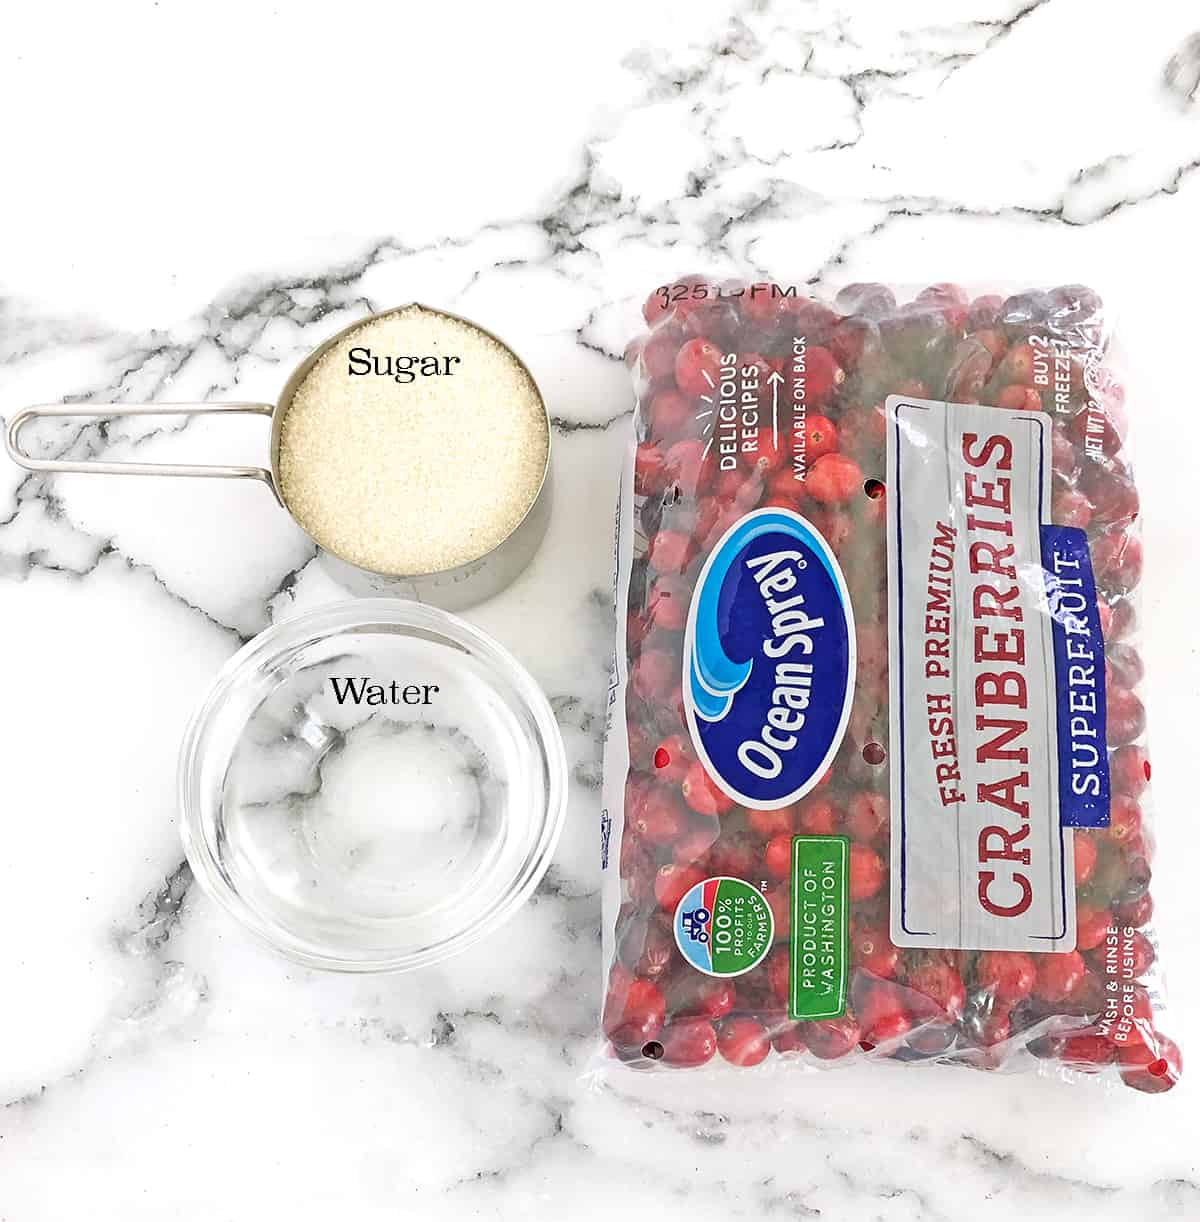 Ingredients for the Cranberry Sauce